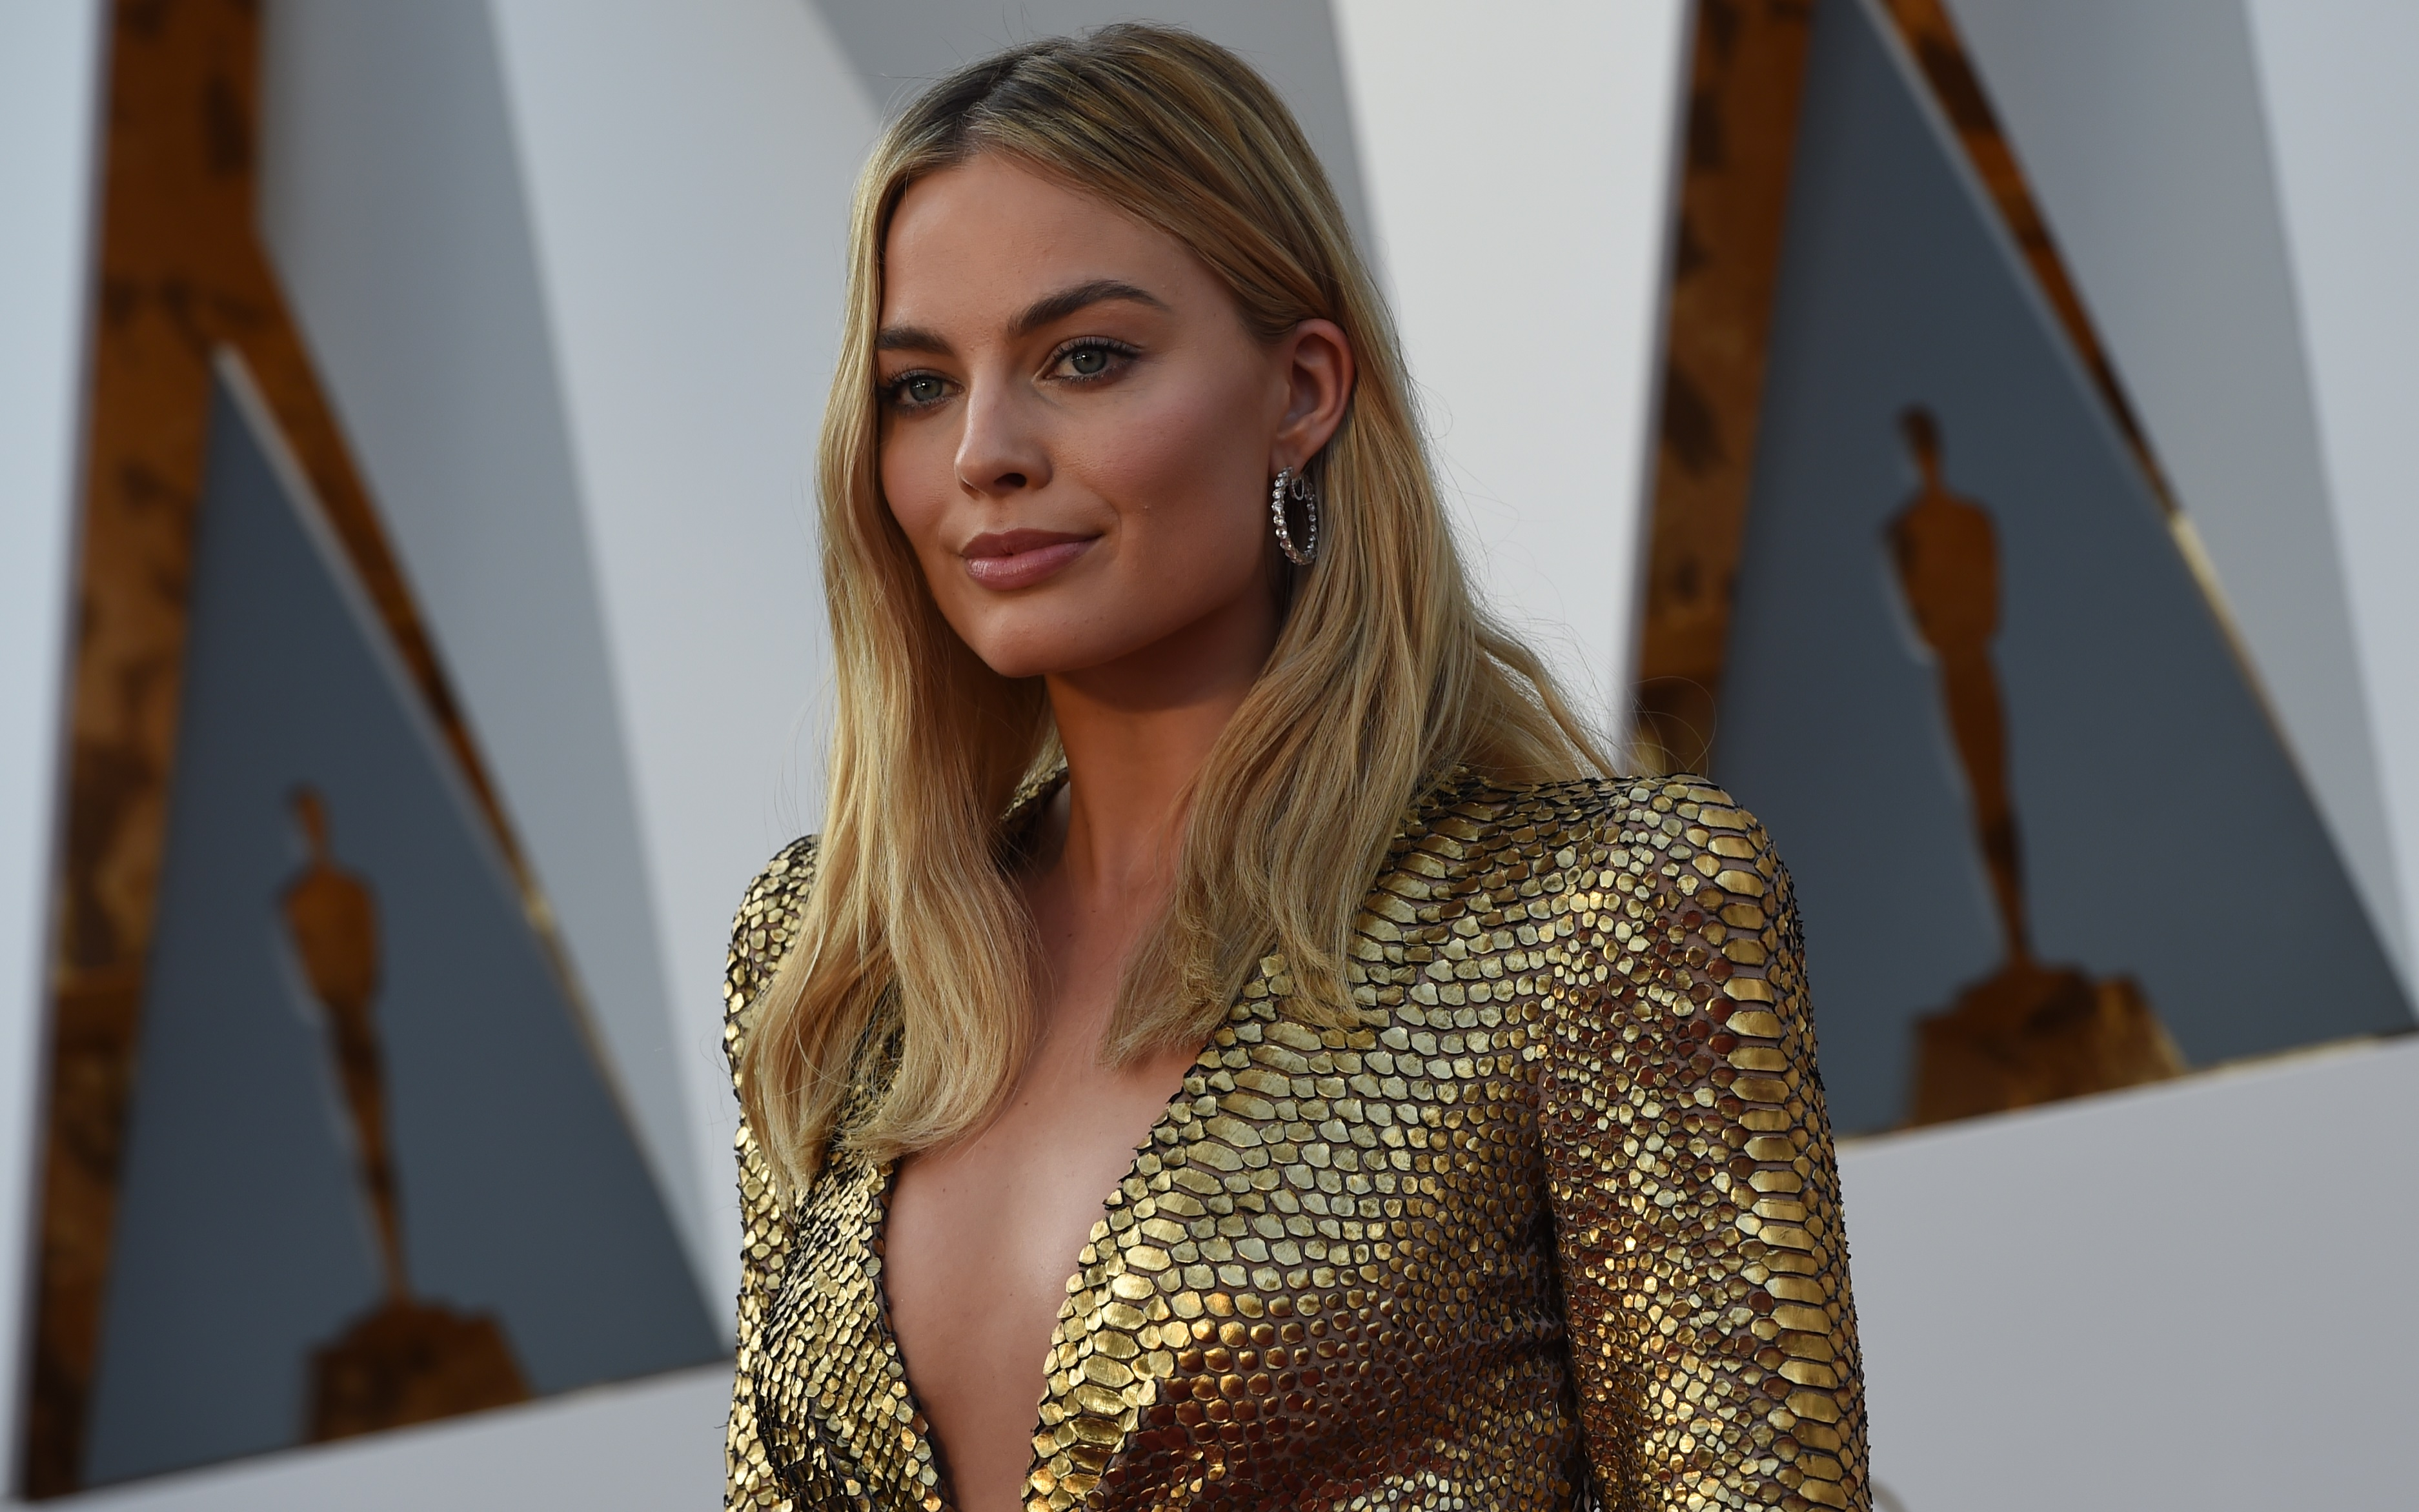 The Most Extravagant Jewelry On The Oscars Red Carpet Racked